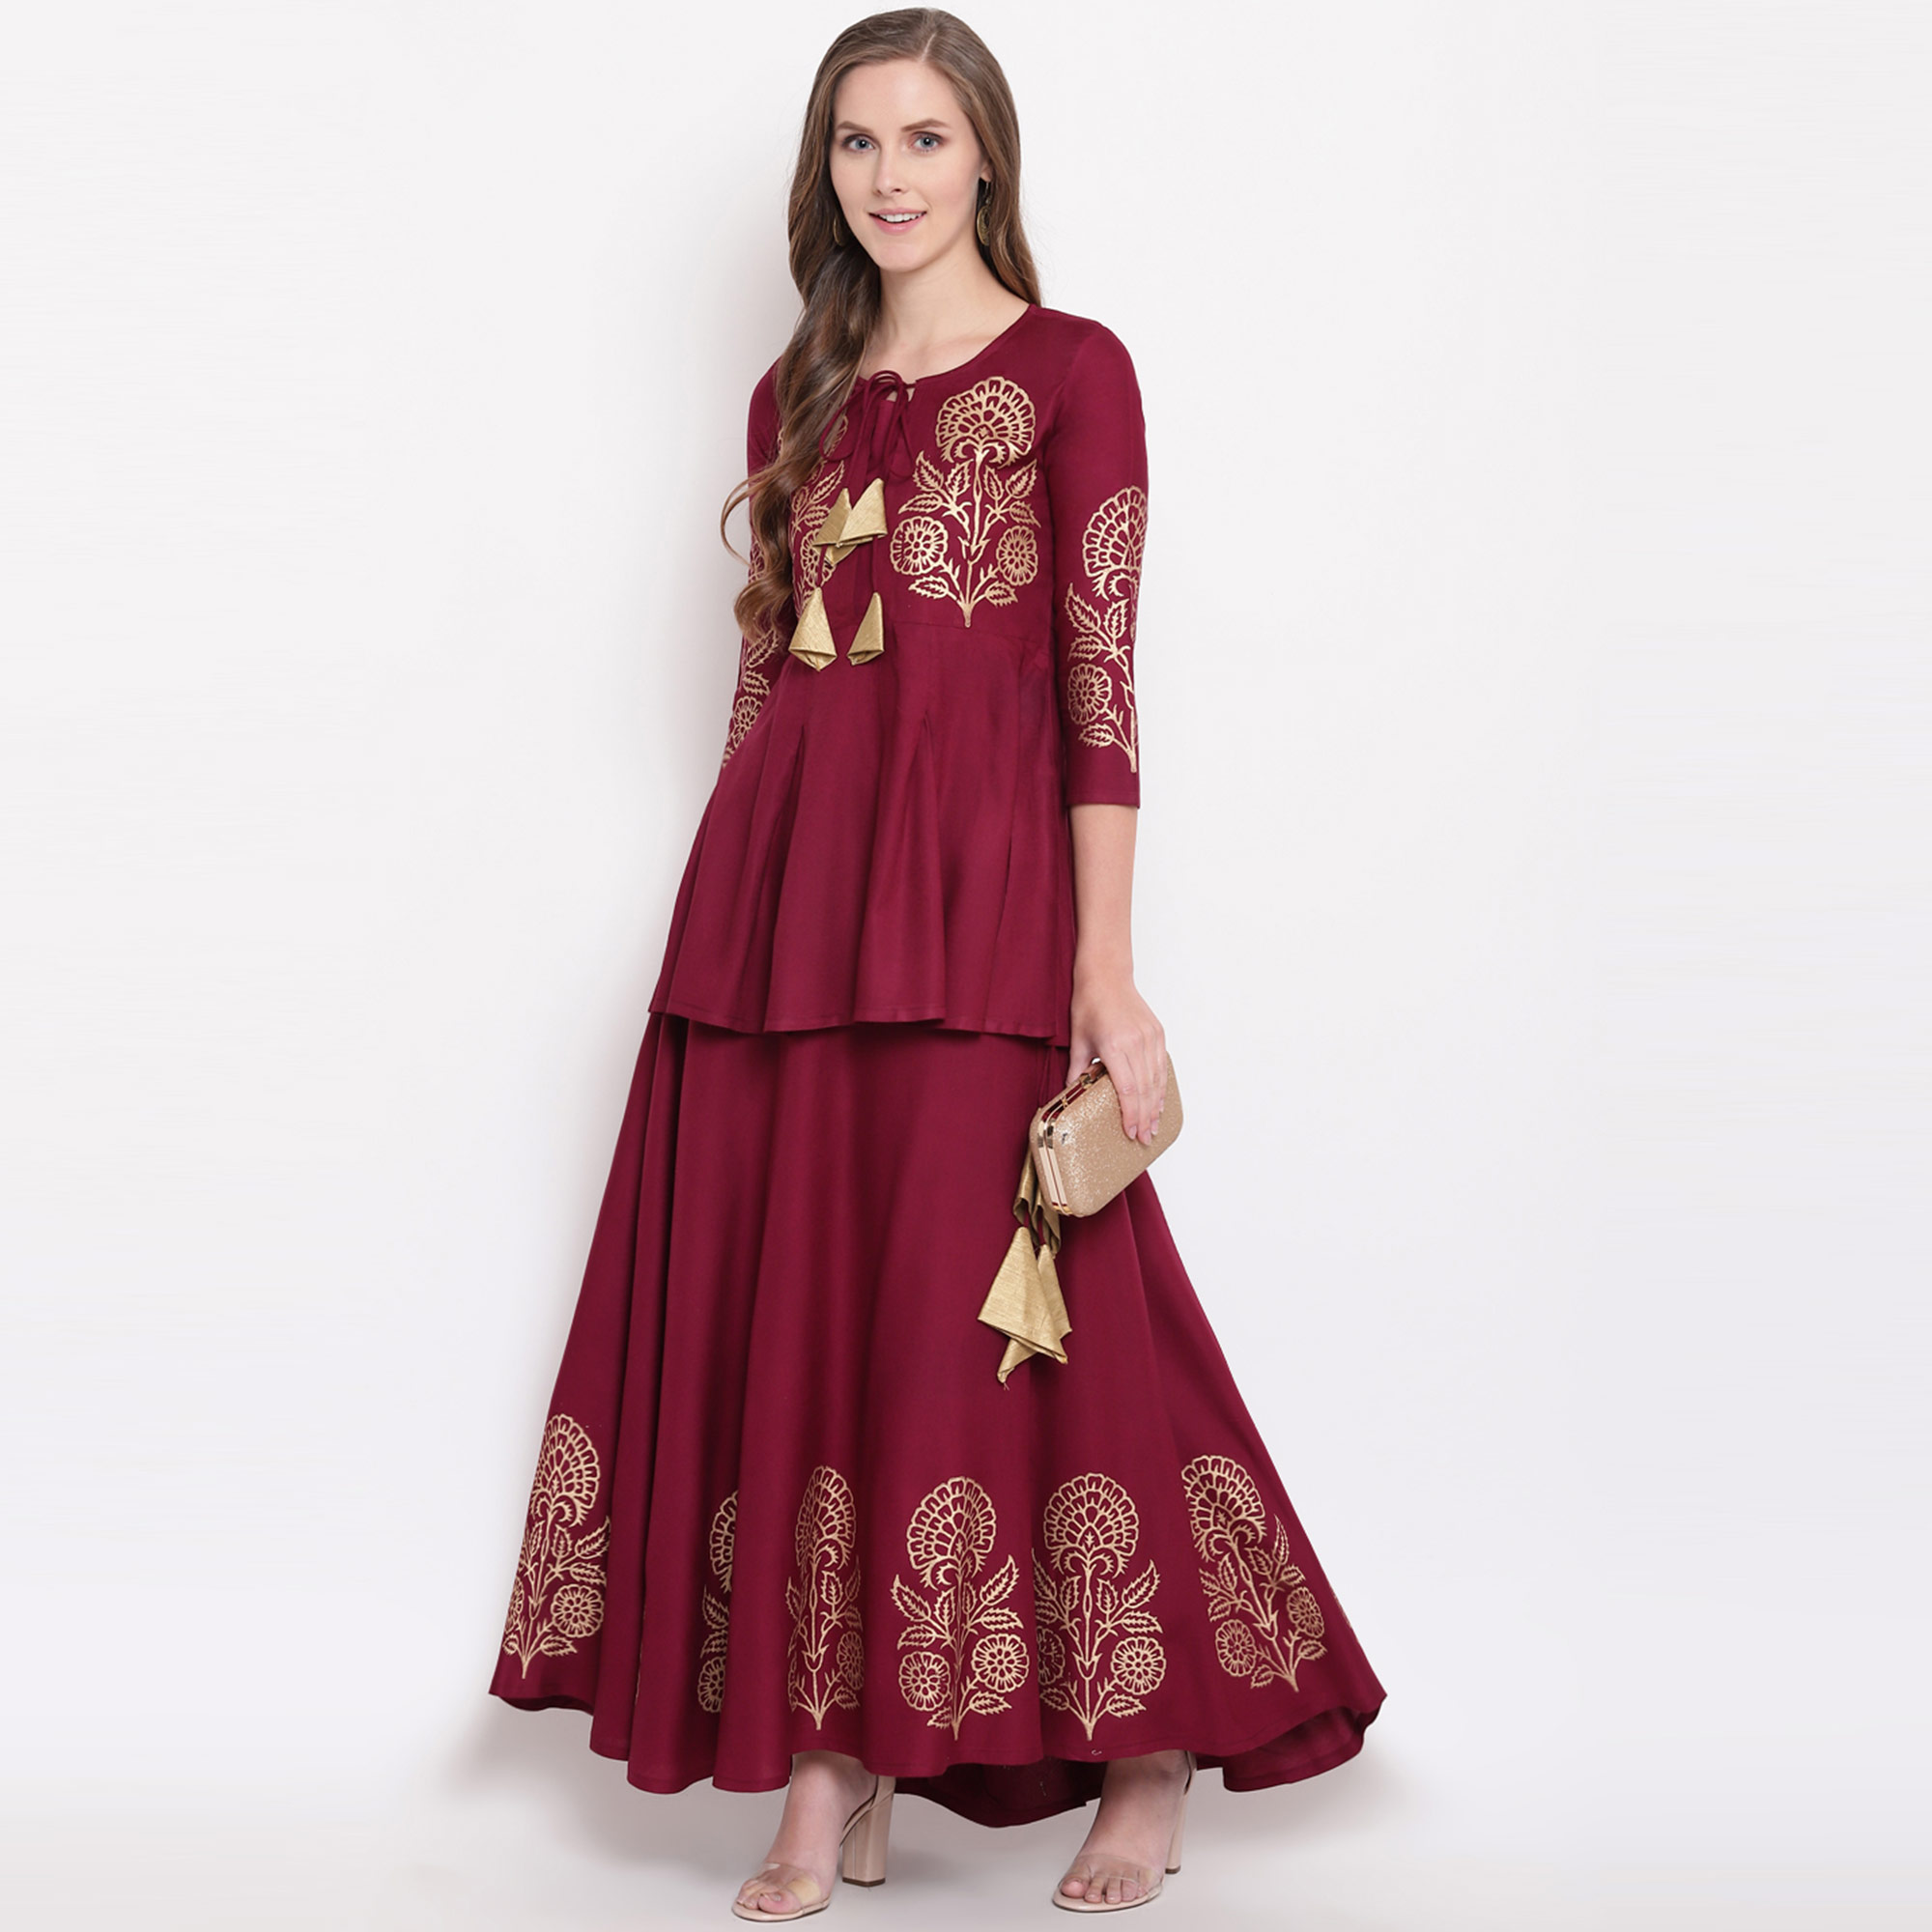 Fantastic Wine Colored Partywear Foil Printed Rayon Short Kurti-Skirt Set